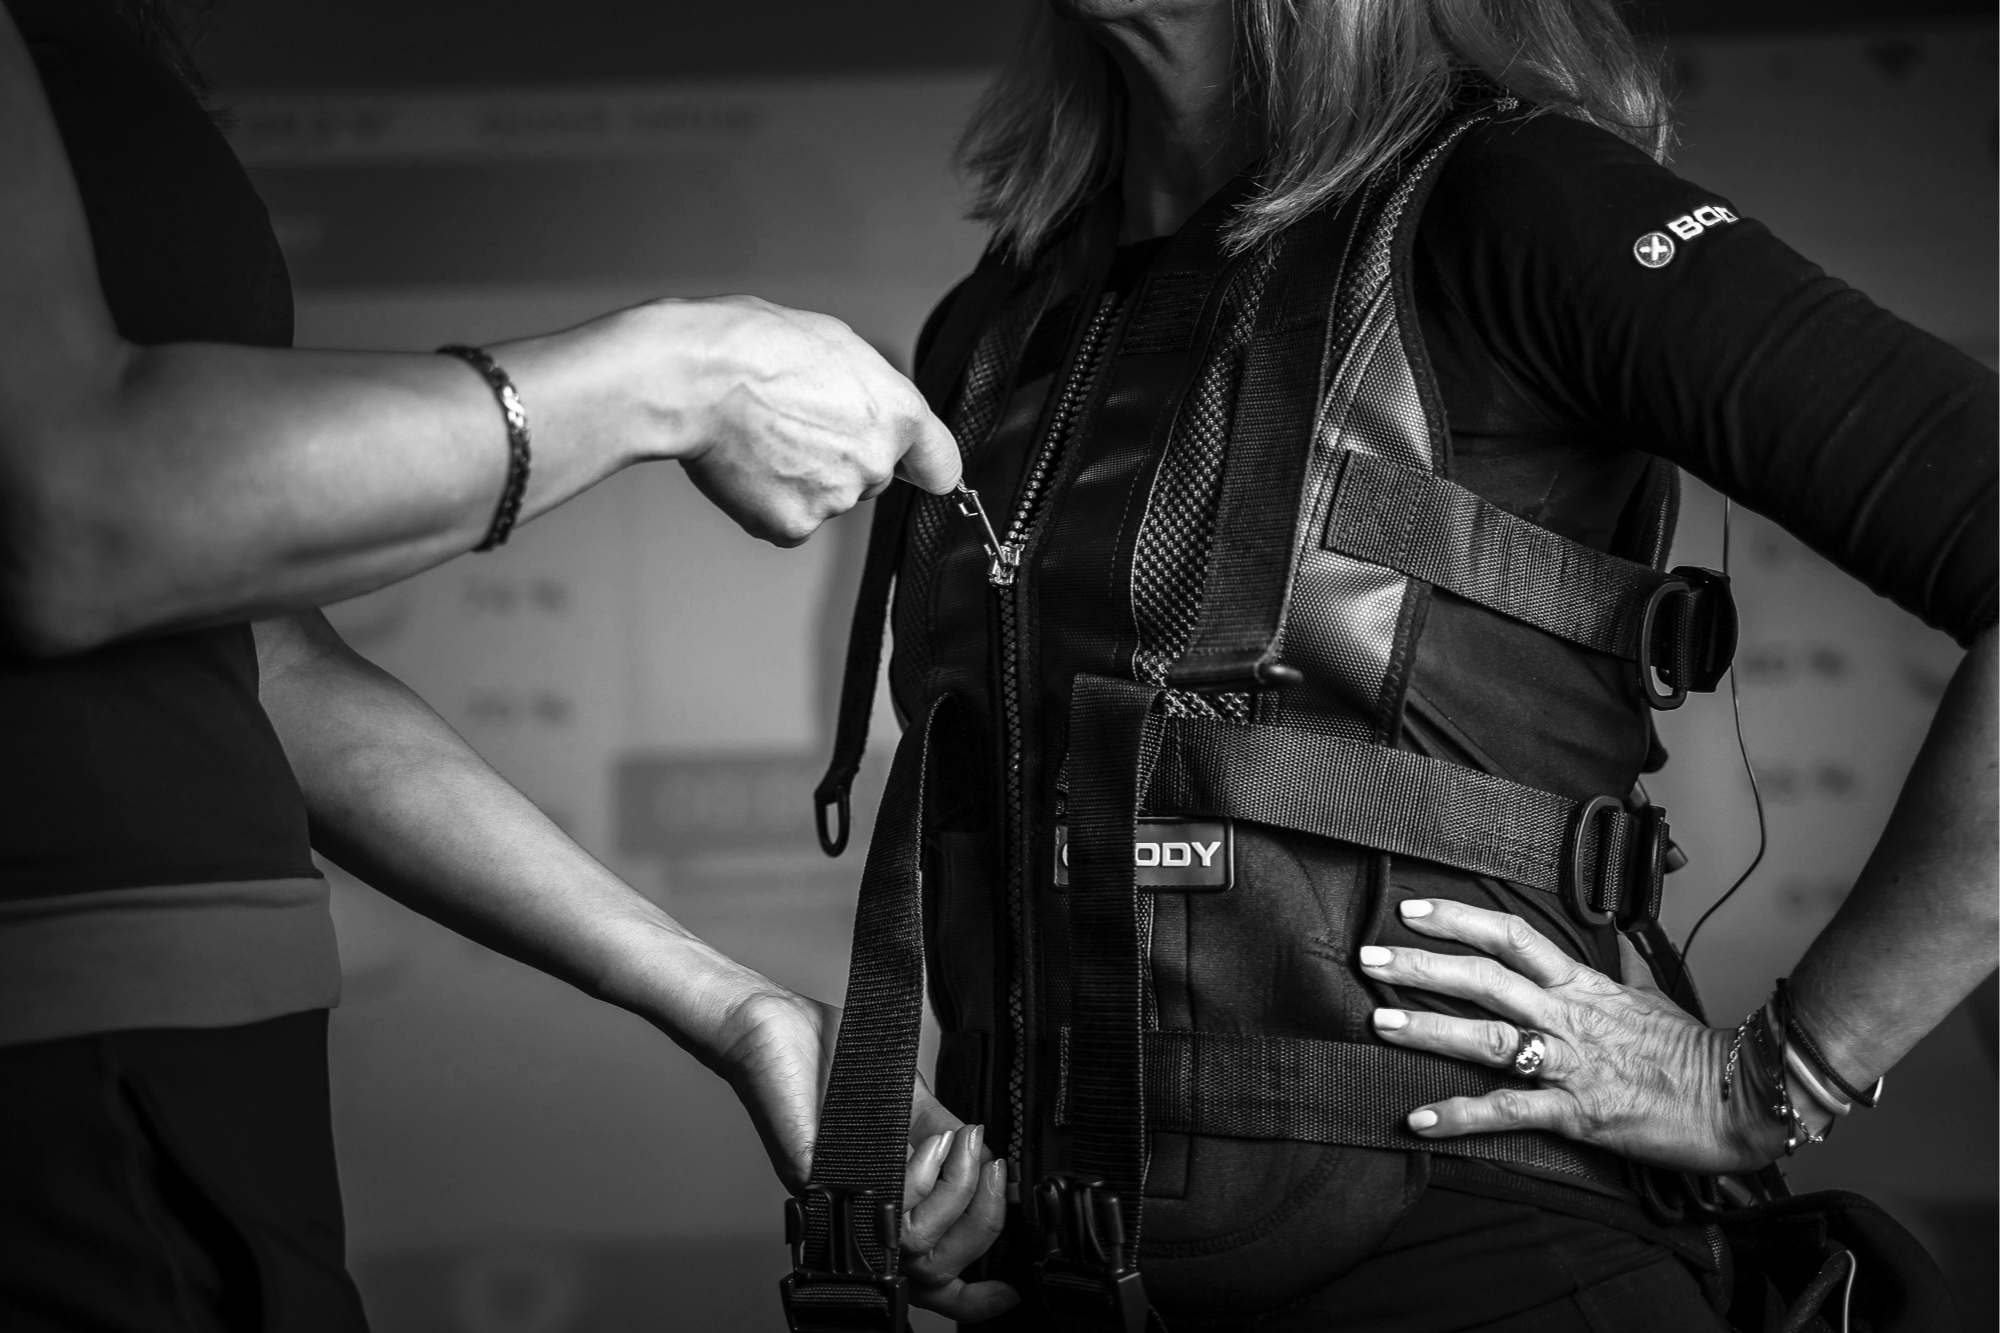 Is EMS safe? - Yes completely safe. Probably the safest training you can do as it is very low impact and it is actually invented by physiotherapists and doctors for rehabilitation of patients. There are a list of contraindications that we explain to each client before the first session.